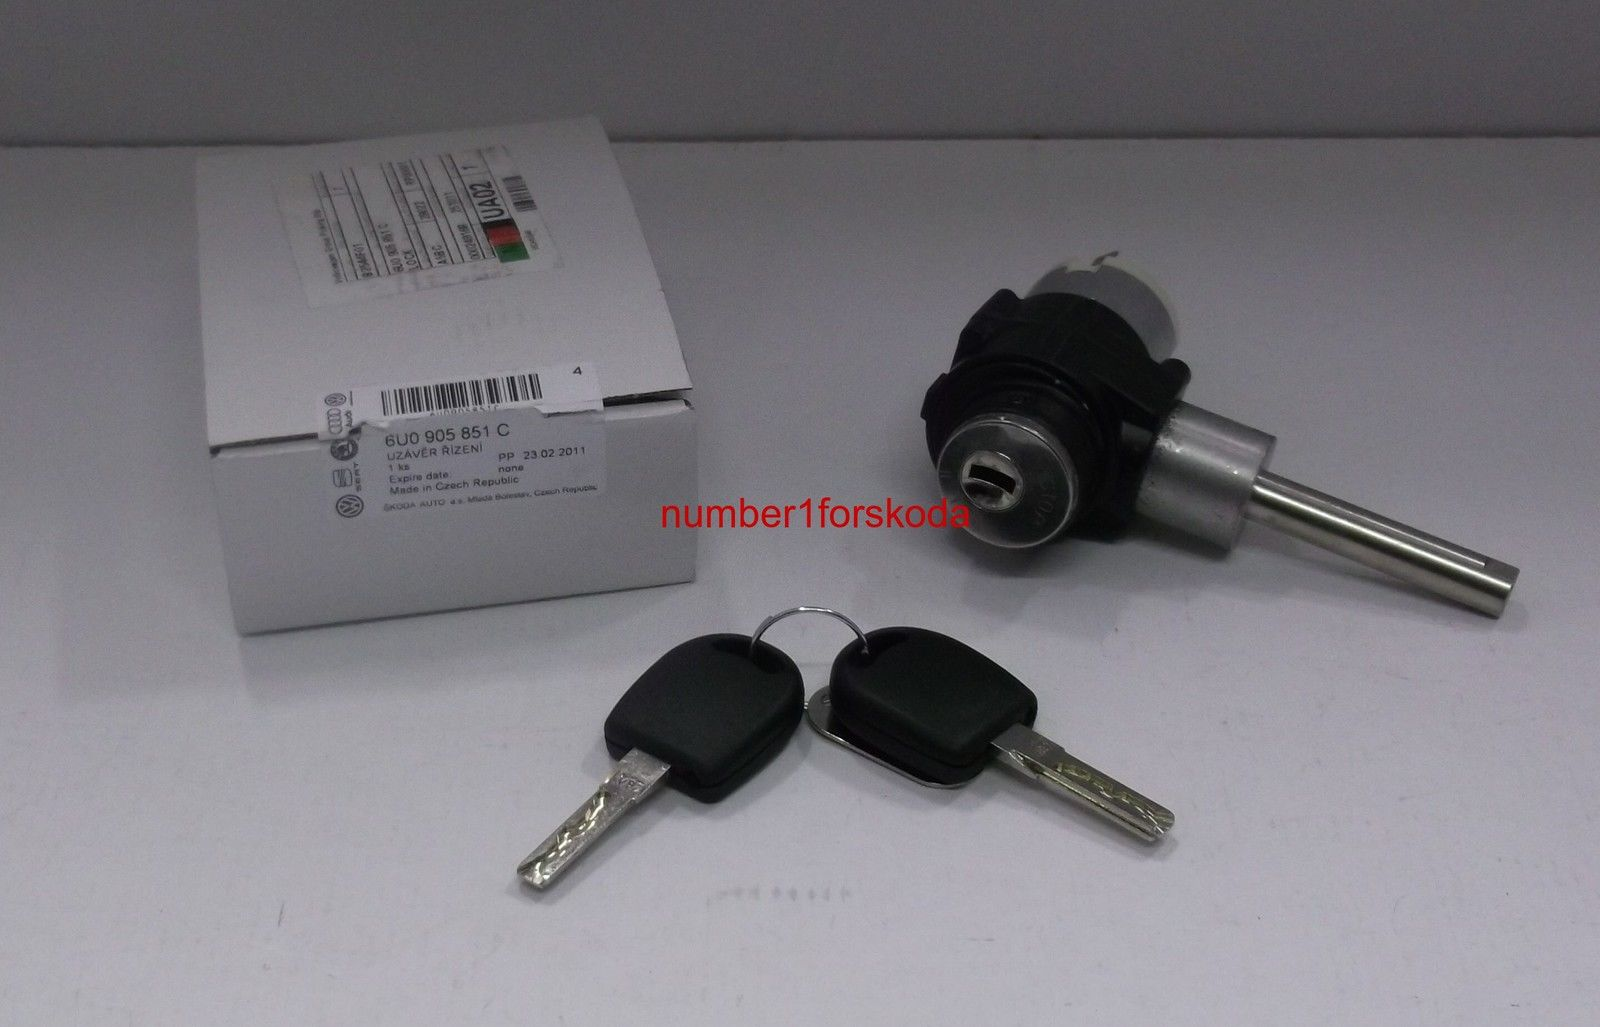 genuine skoda replacement ignition lock keys 6u0905851c ebay. Black Bedroom Furniture Sets. Home Design Ideas